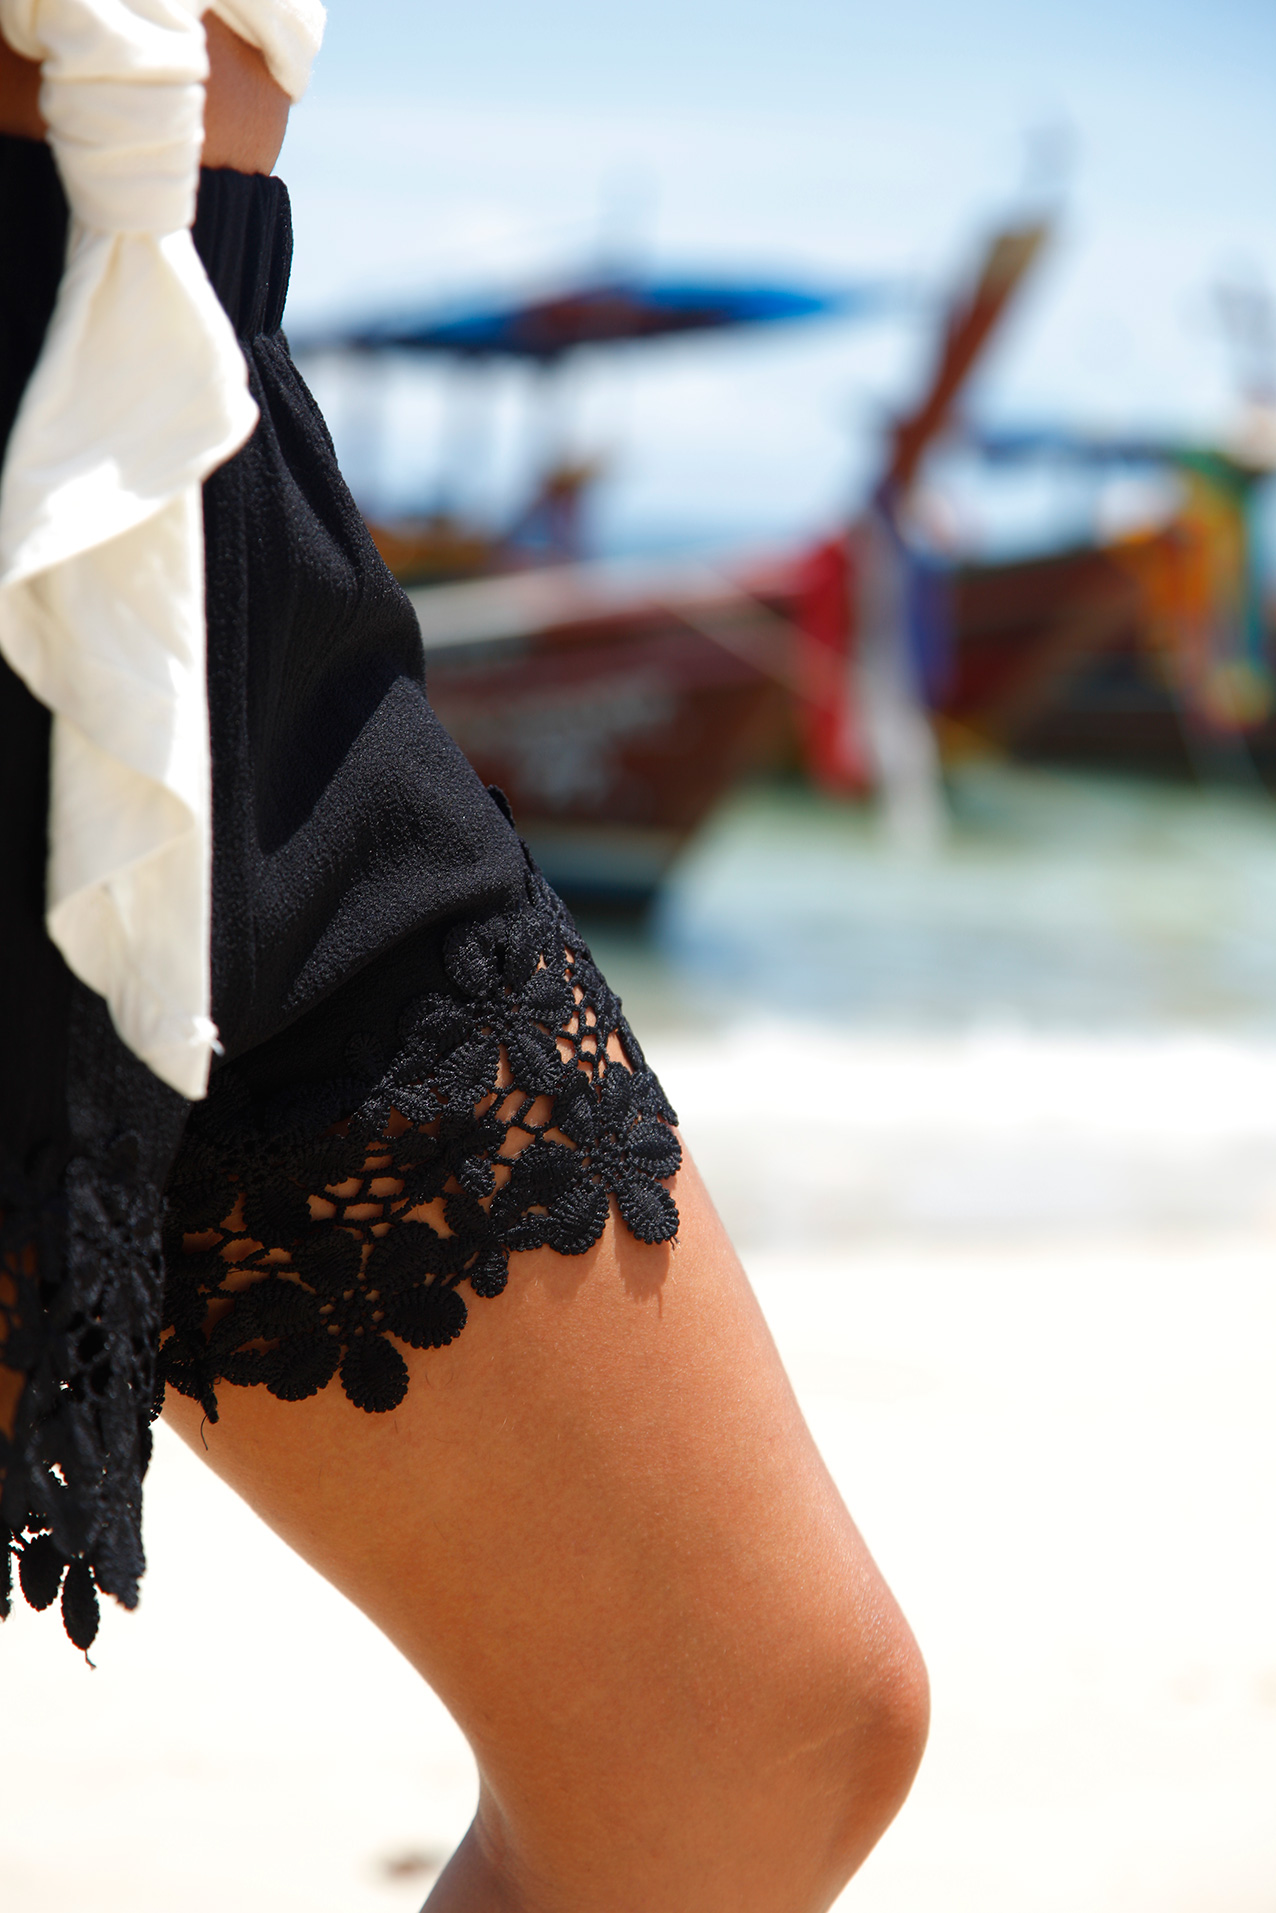 Beach_outfit-Polin_et_moi-shorts-streetstyle-cool_lemonade